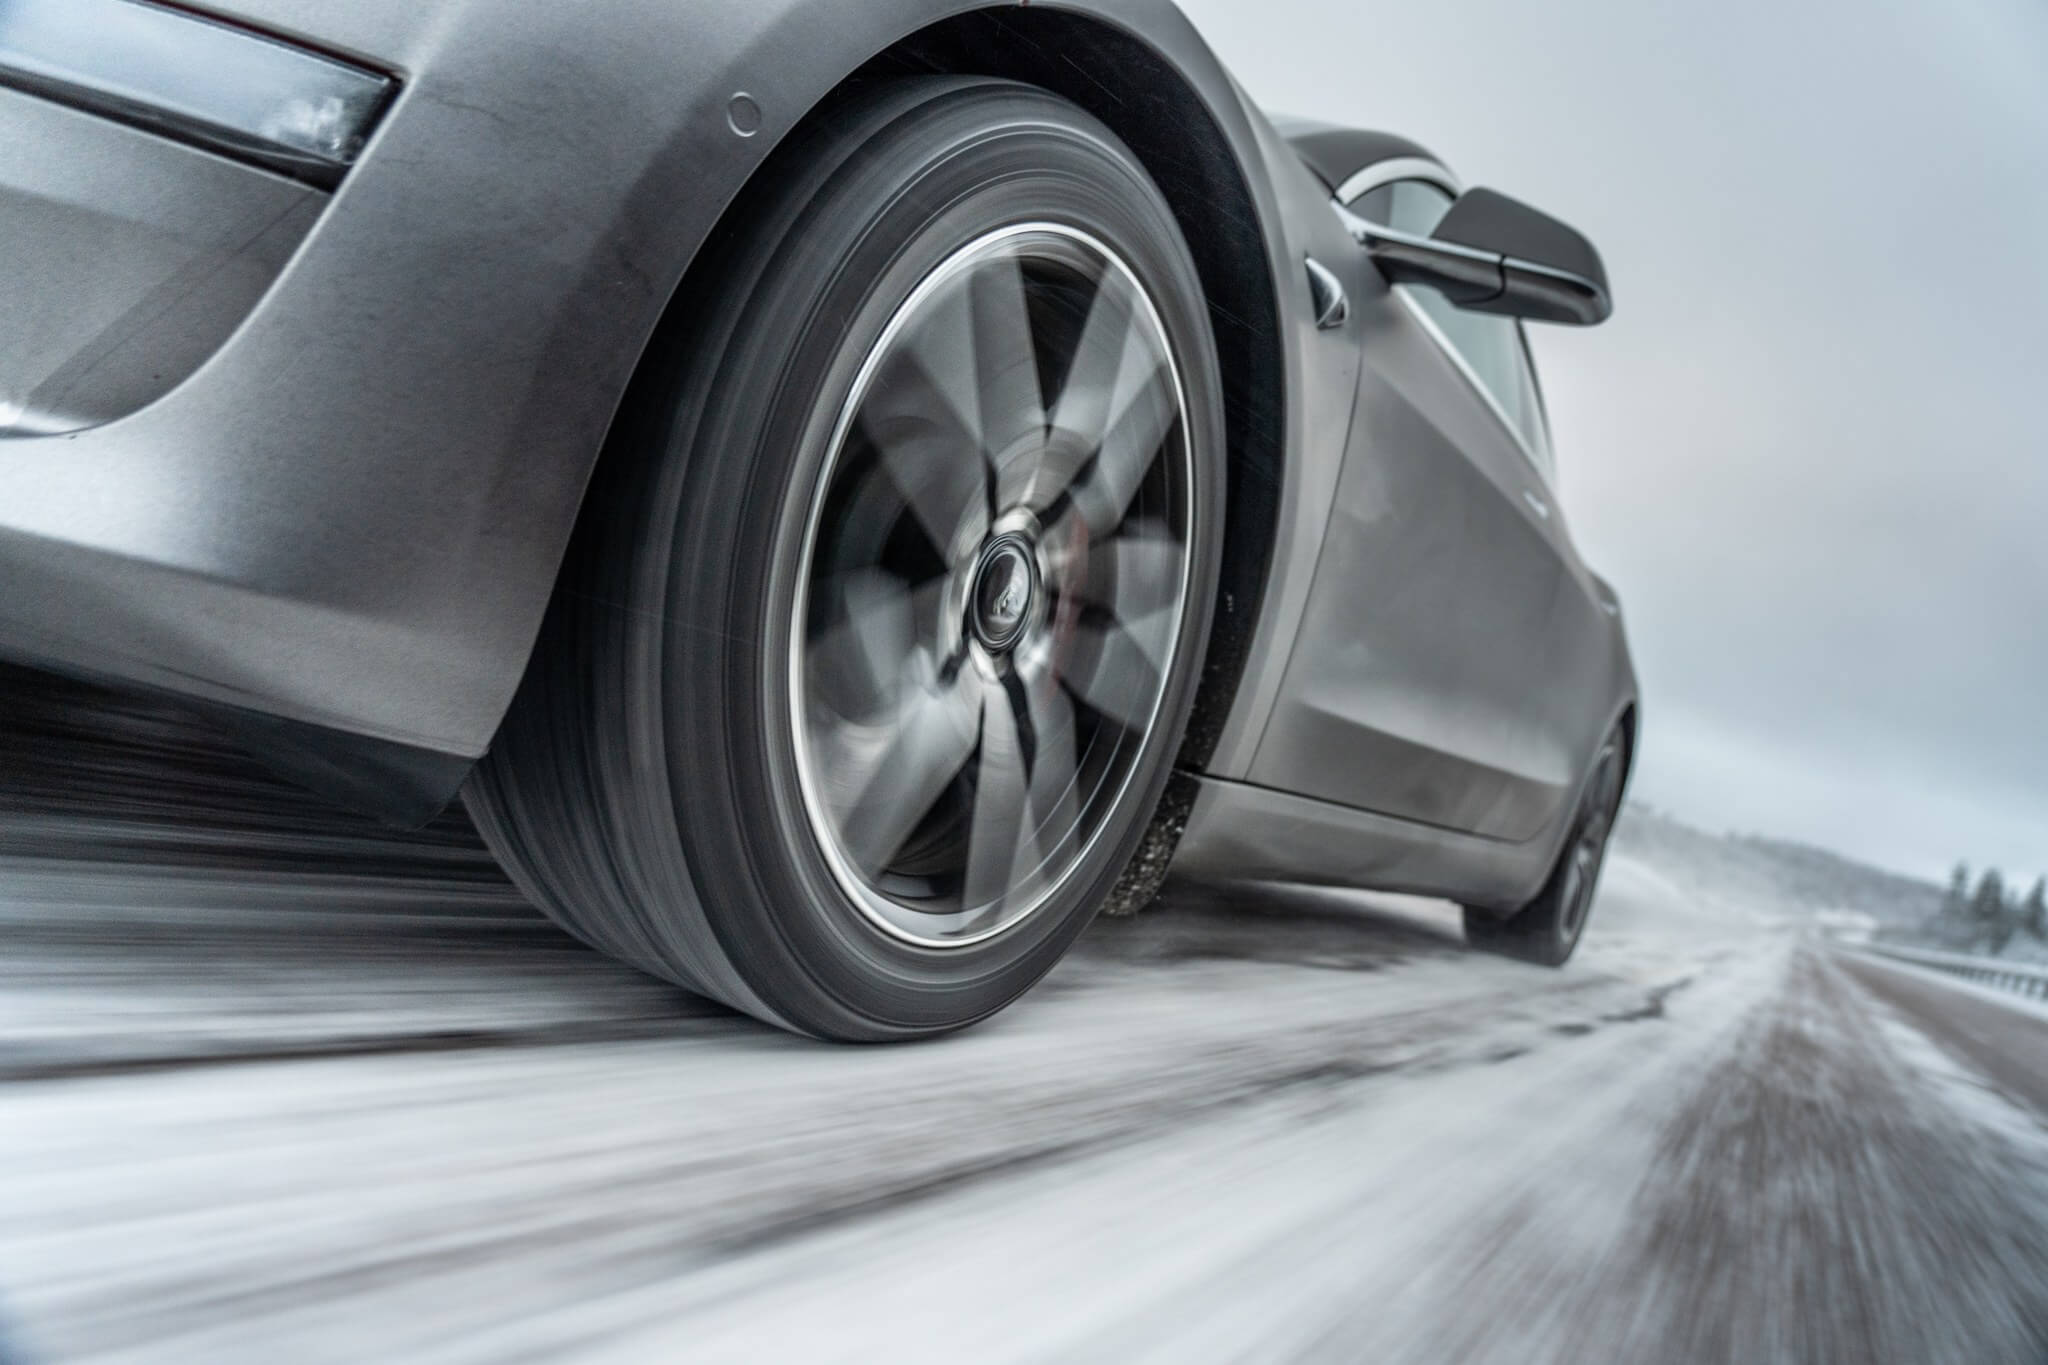 For the first time, Nokian Tyres has created a winter tire specifically for electric vehicles, the Nokian Hakkapeliitta 10 EV